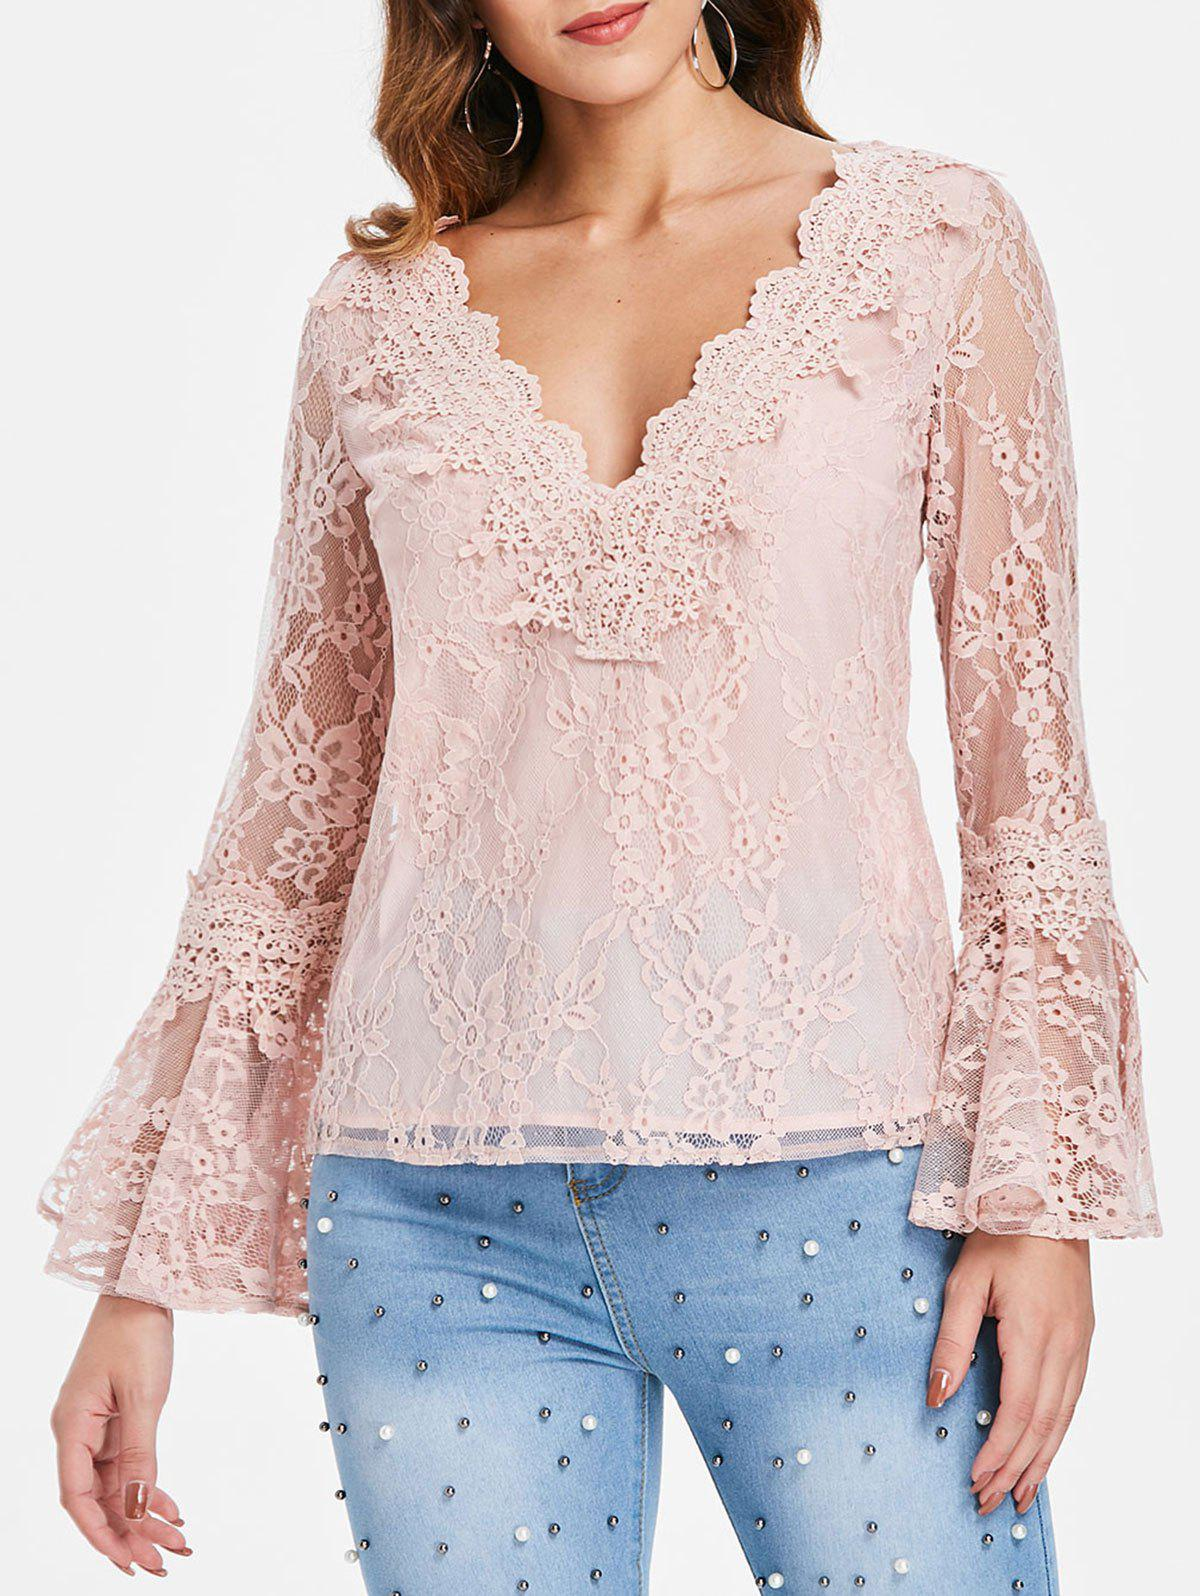 Bell Sleeve Lace Top - LIGHT PINK L